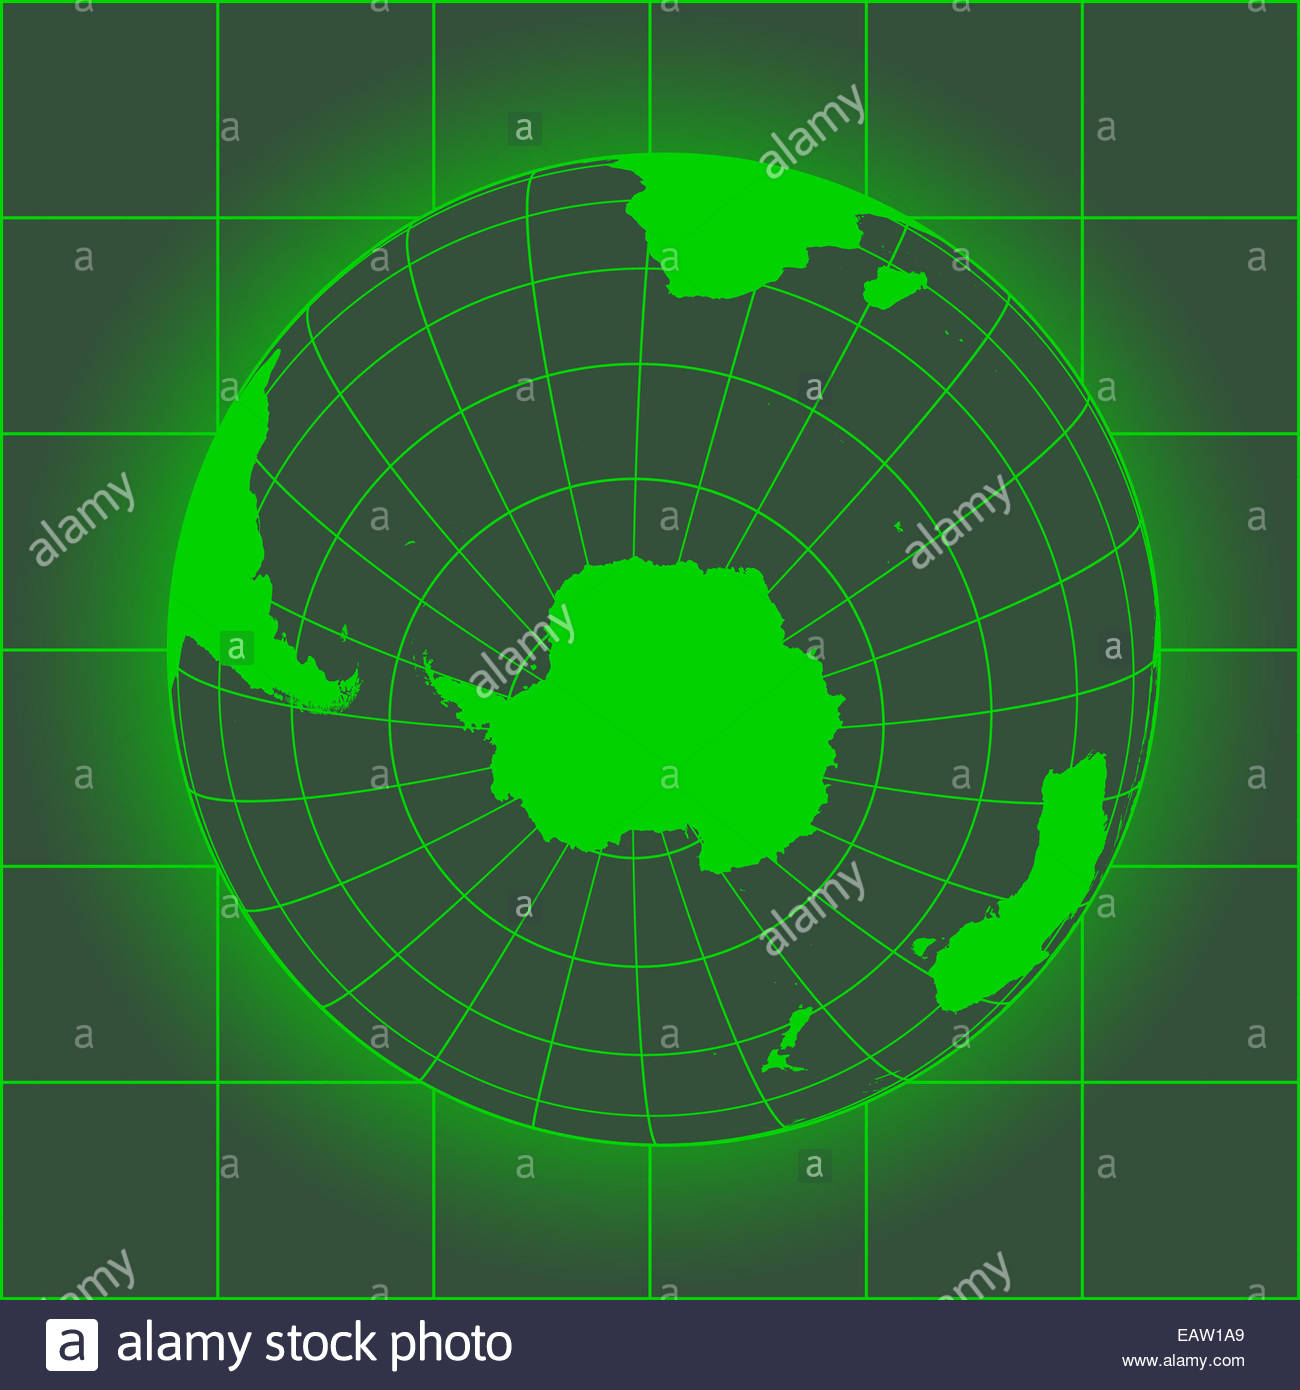 Green antarctica and south pole map antarctica australia america green antarctica and south pole map antarctica australia america africa earth globe old style map of the world gumiabroncs Image collections